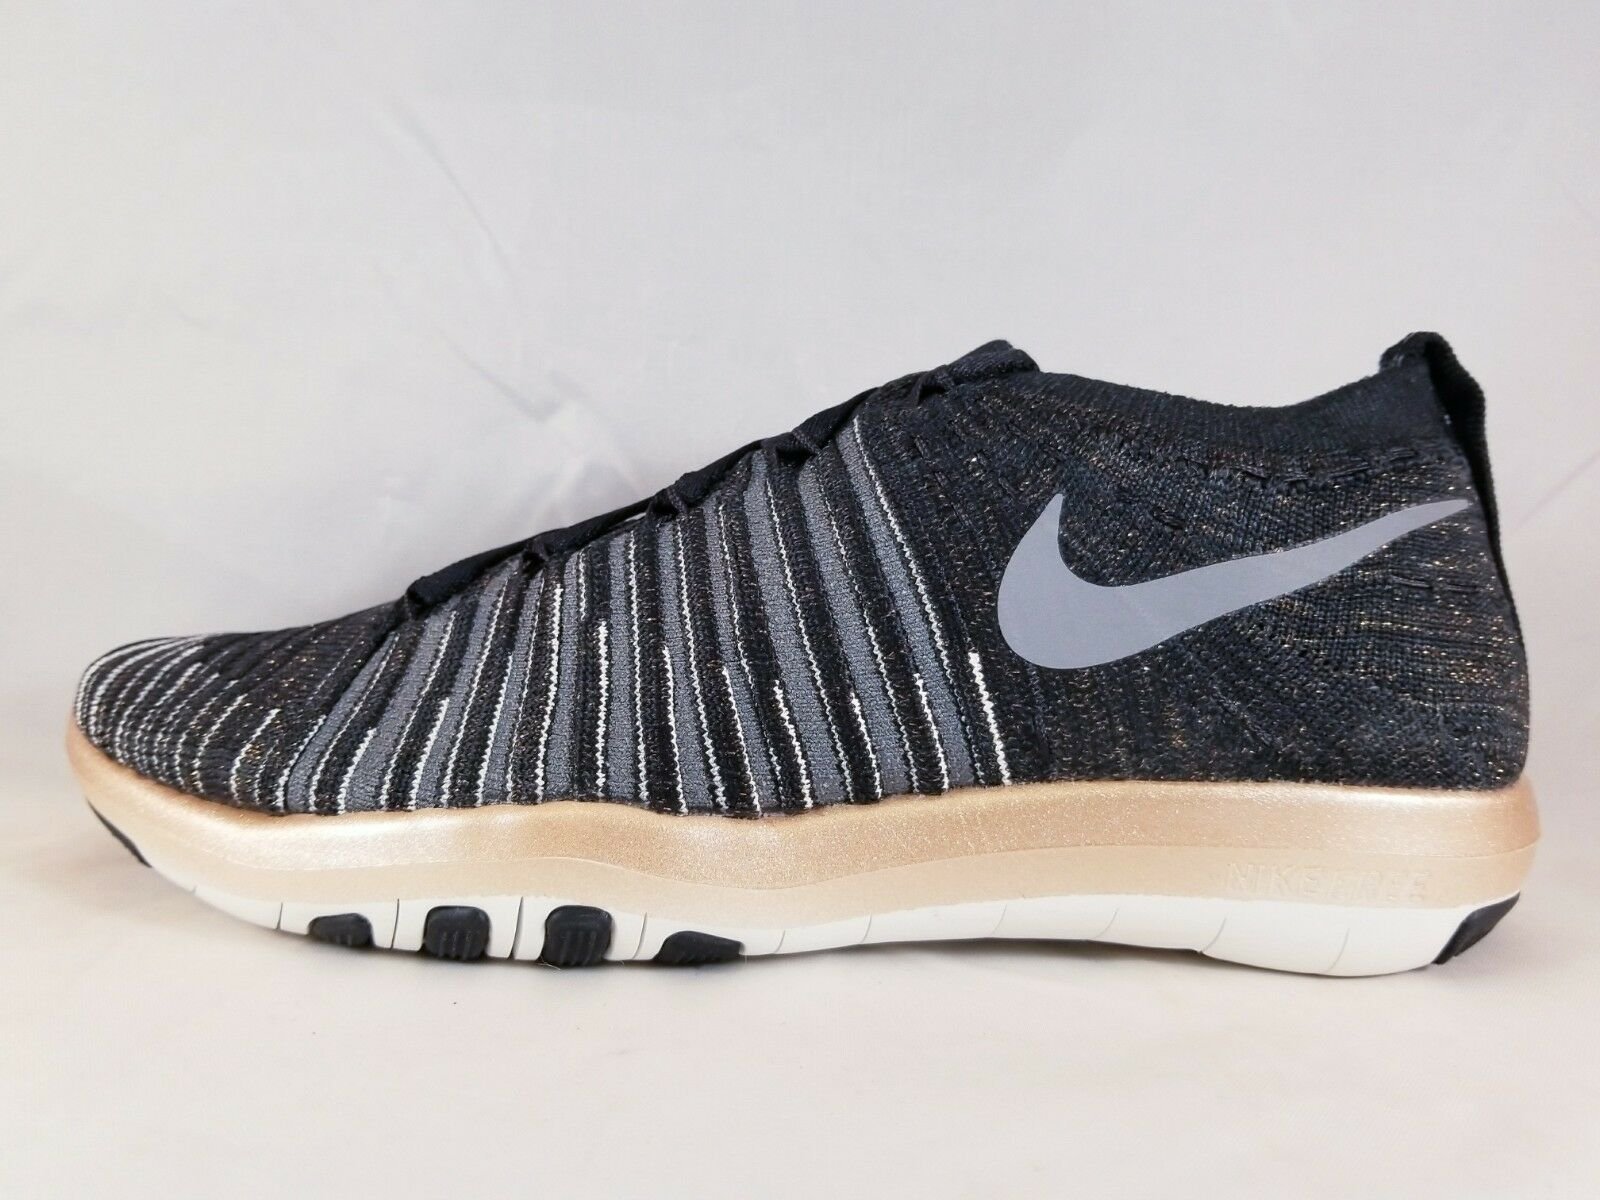 femme libre taille de transformer flyknit nike 833410 005 chaussures taille libre 7,5 7c0c13